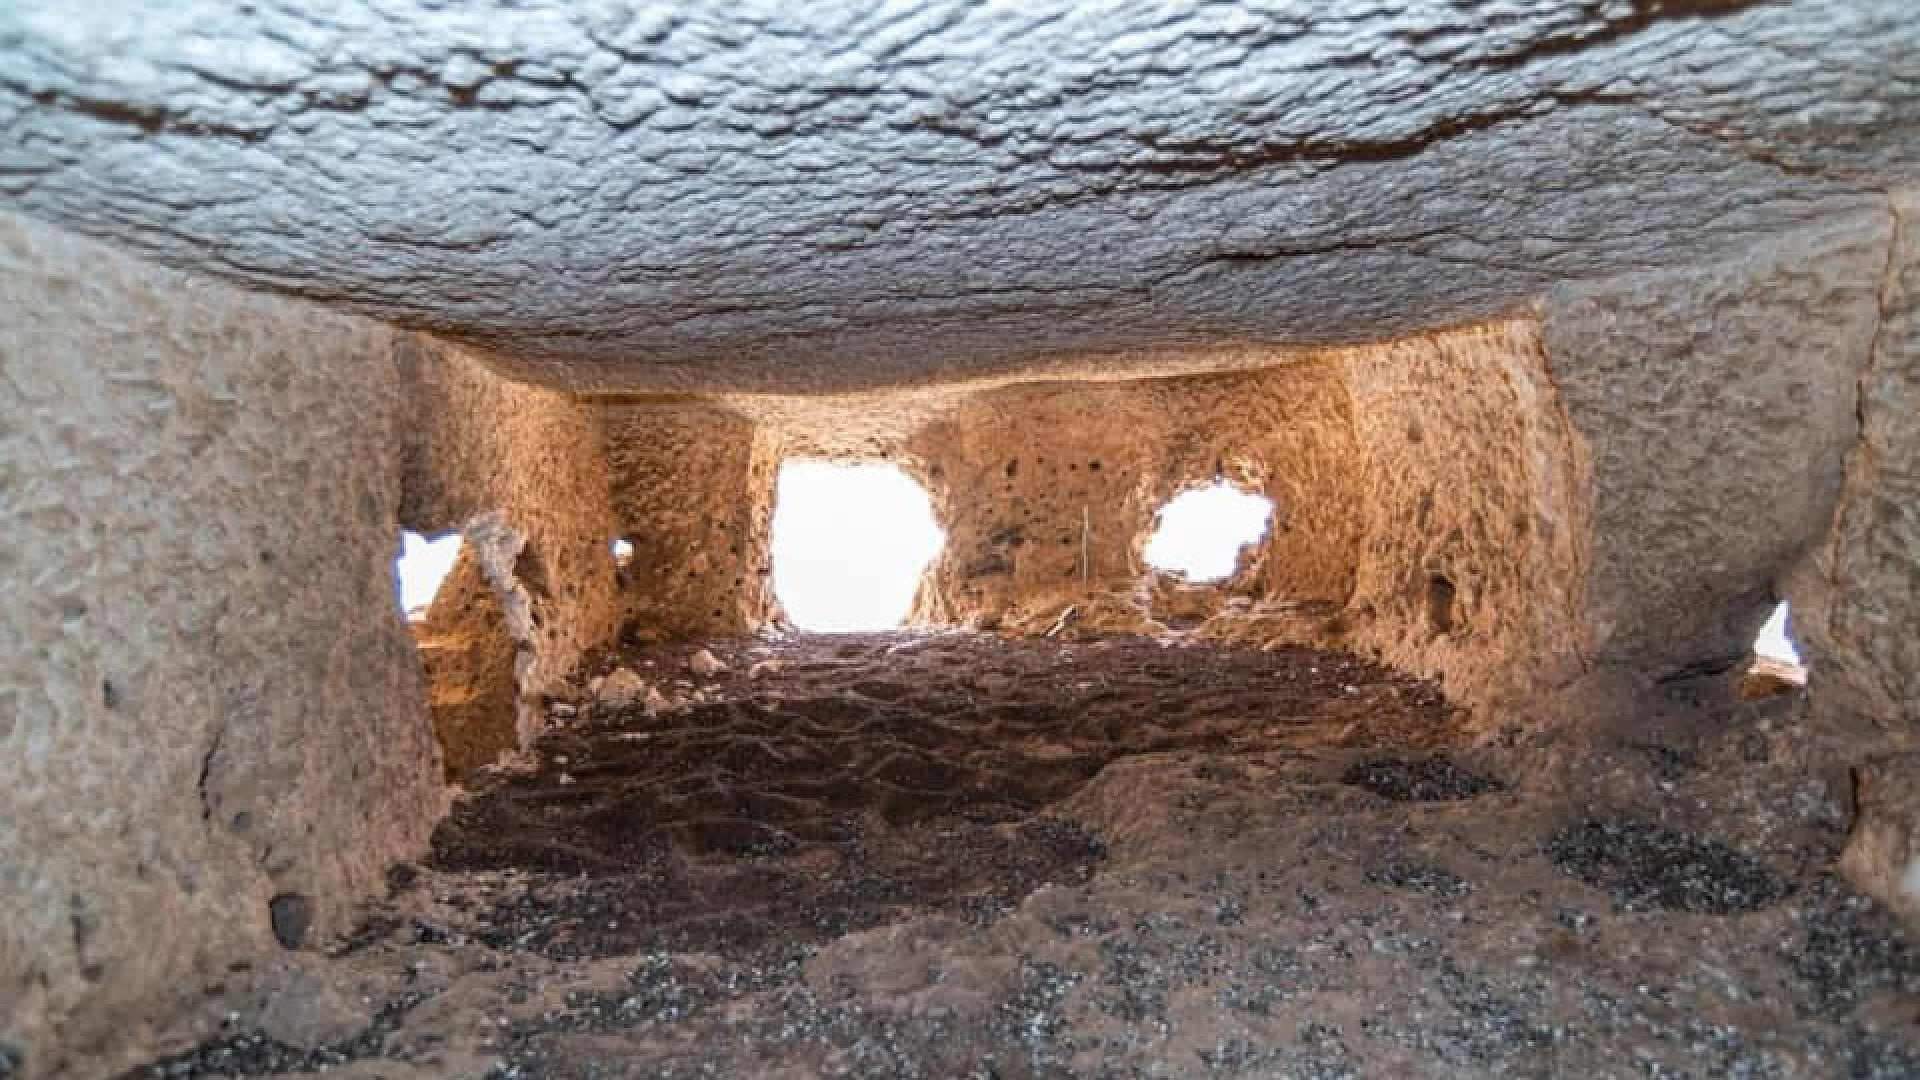 Mysterious chambers created in the rock were found on a cliff in Abydos, Egypt 5